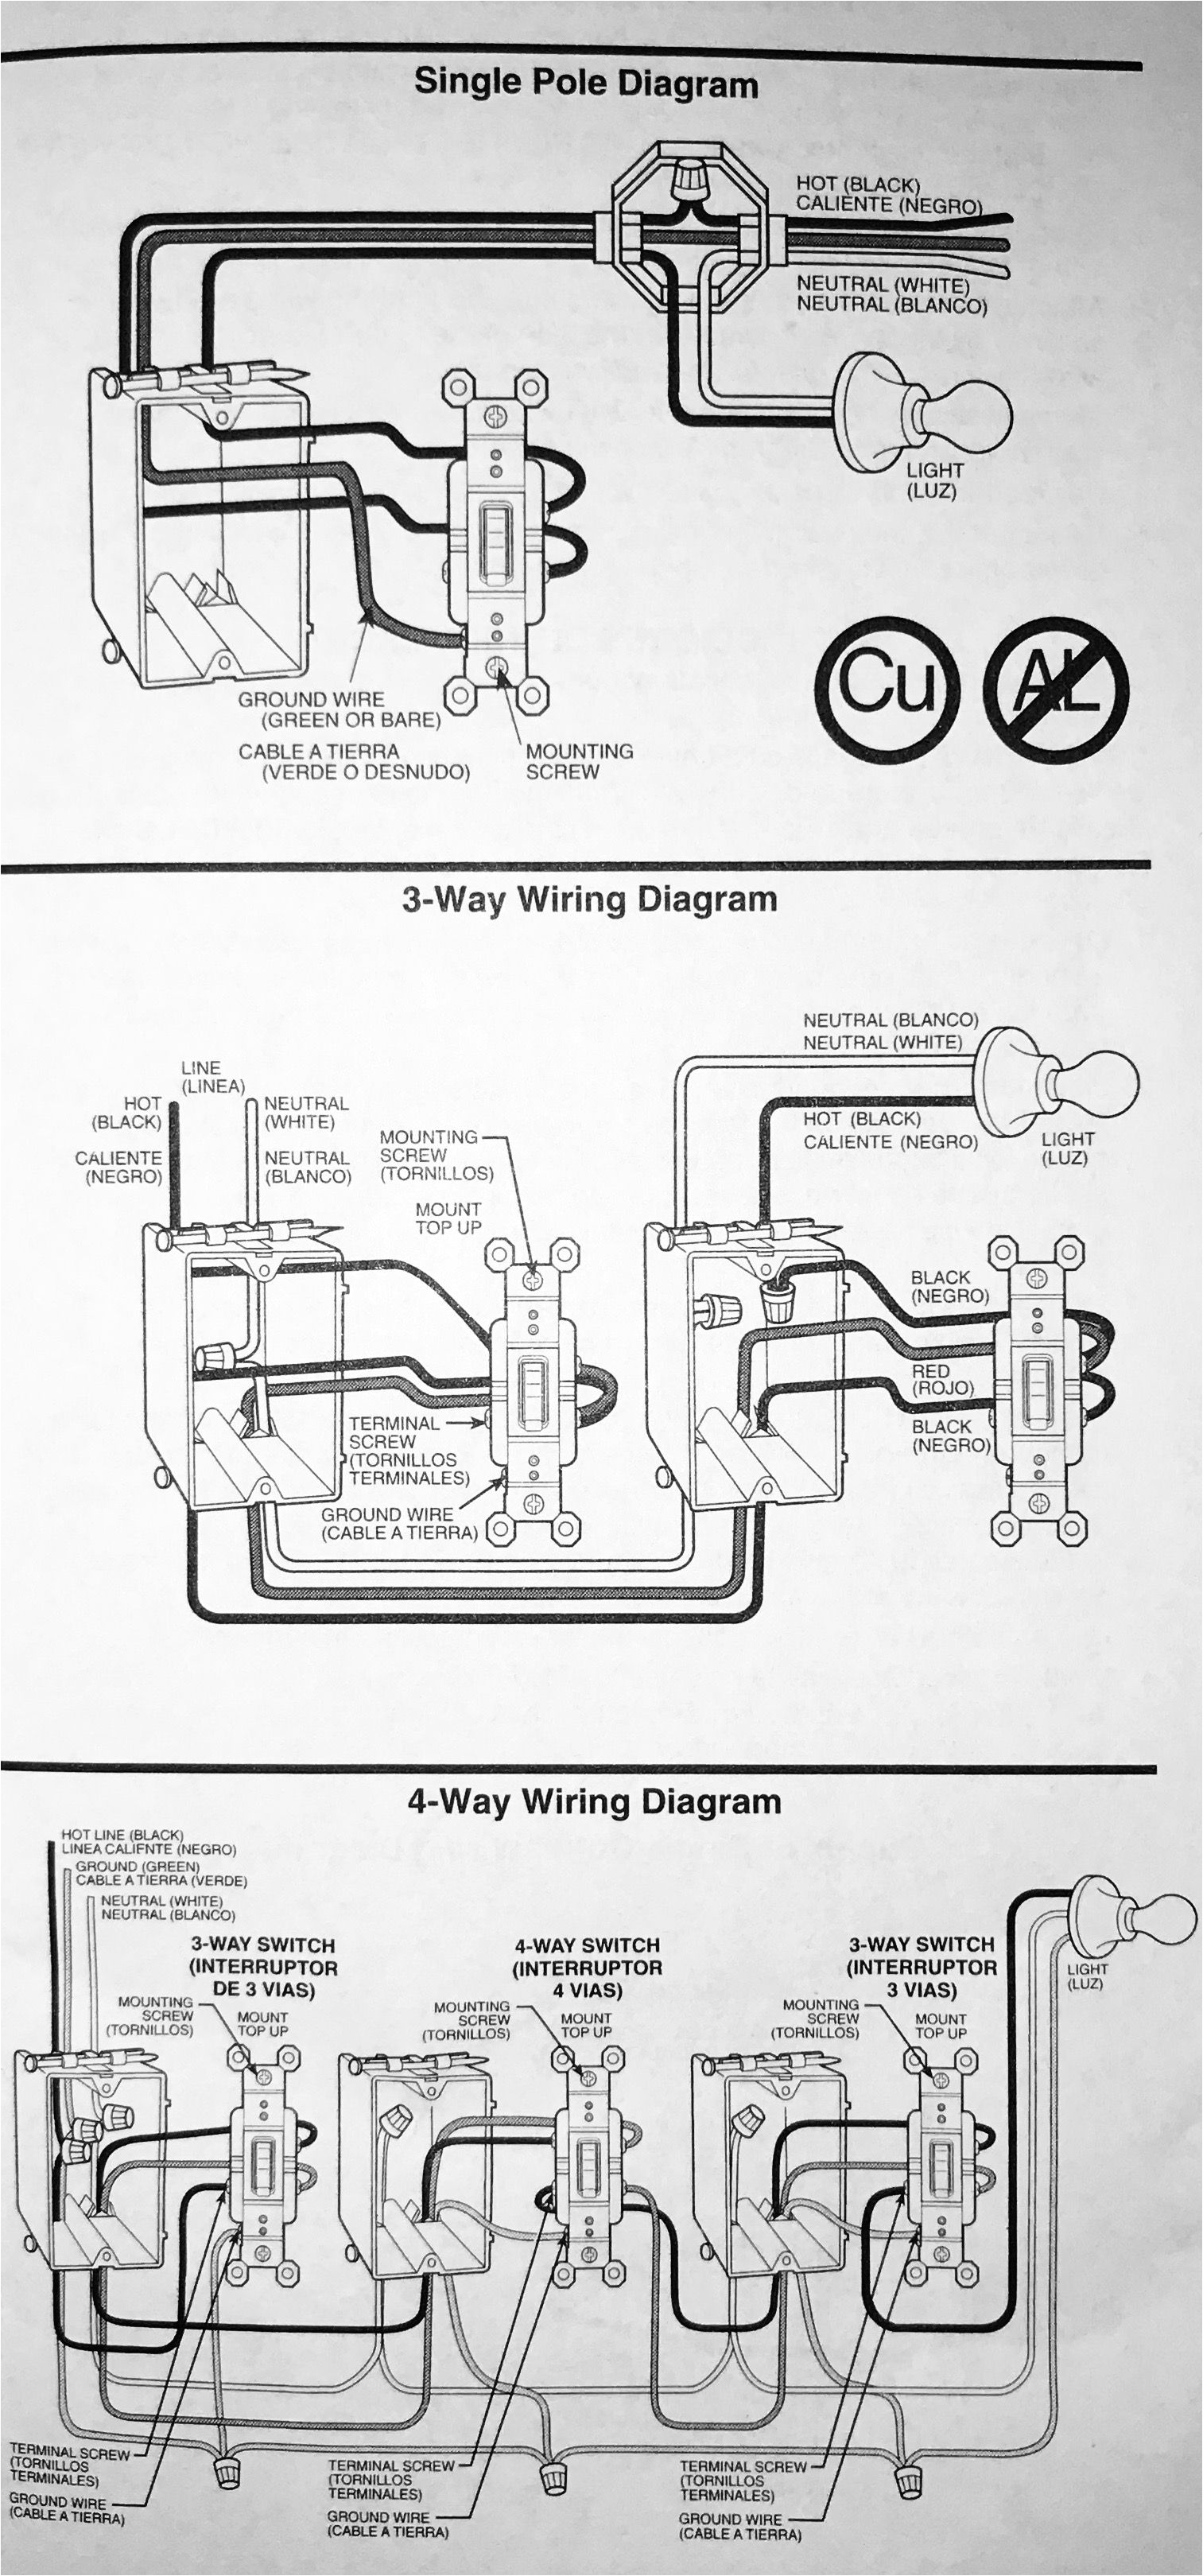 Three Way Electrical Wiring Diagram Wire Diagram for 3 Way Switch Wiring Diagram